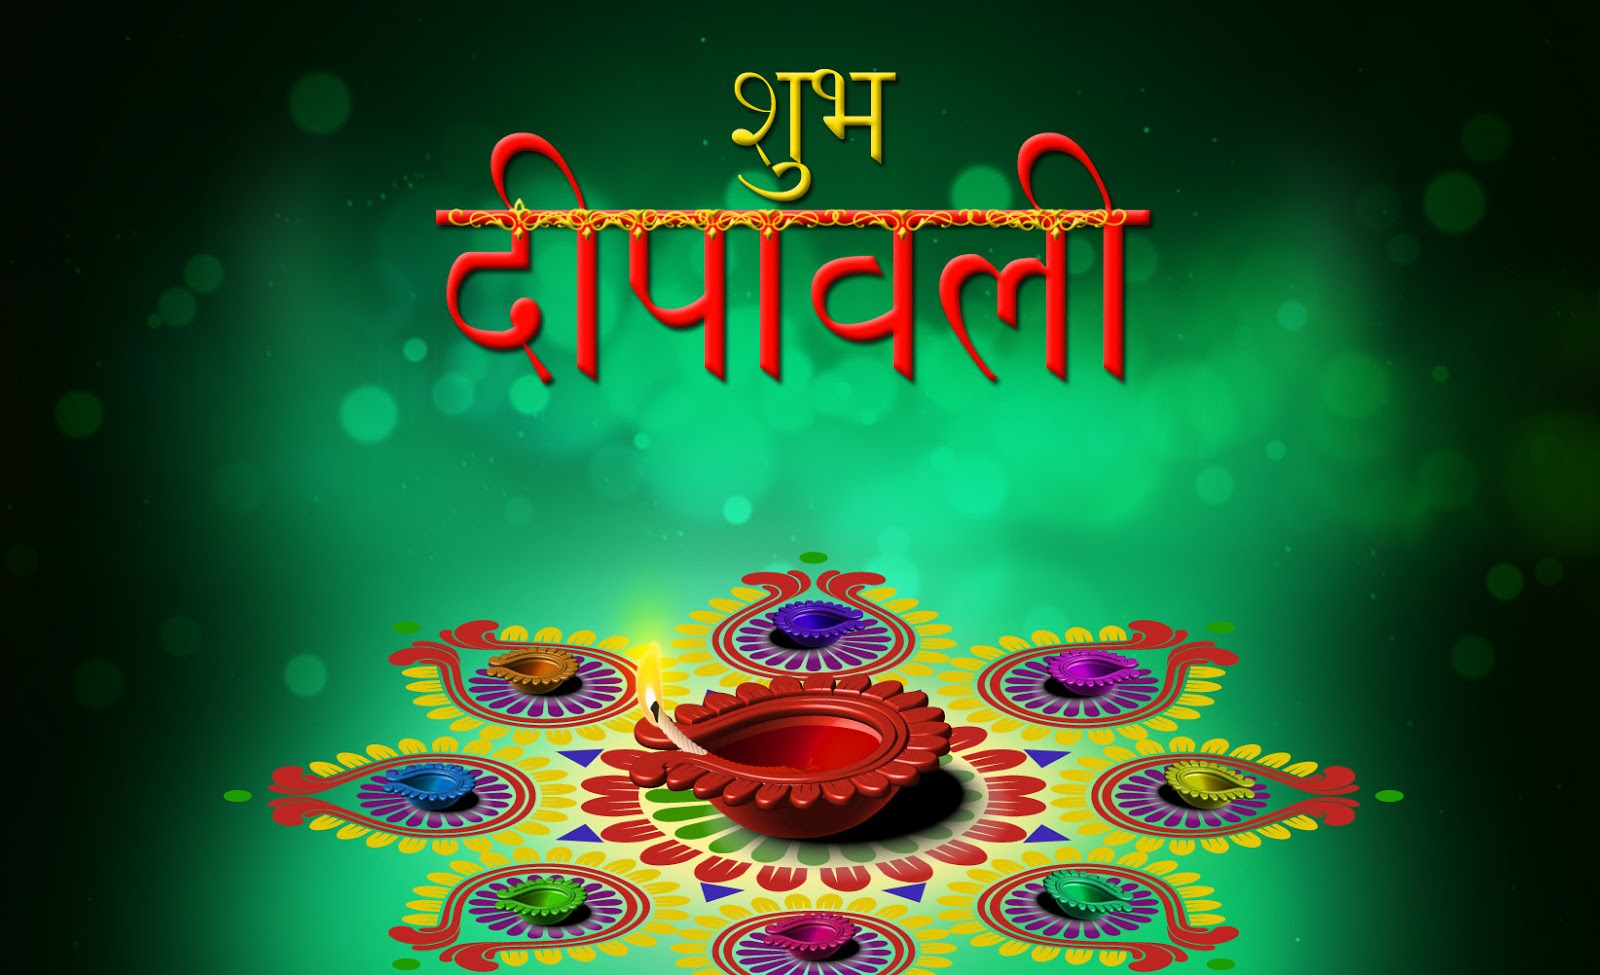 Happy Diwali Image 2016 Hindi